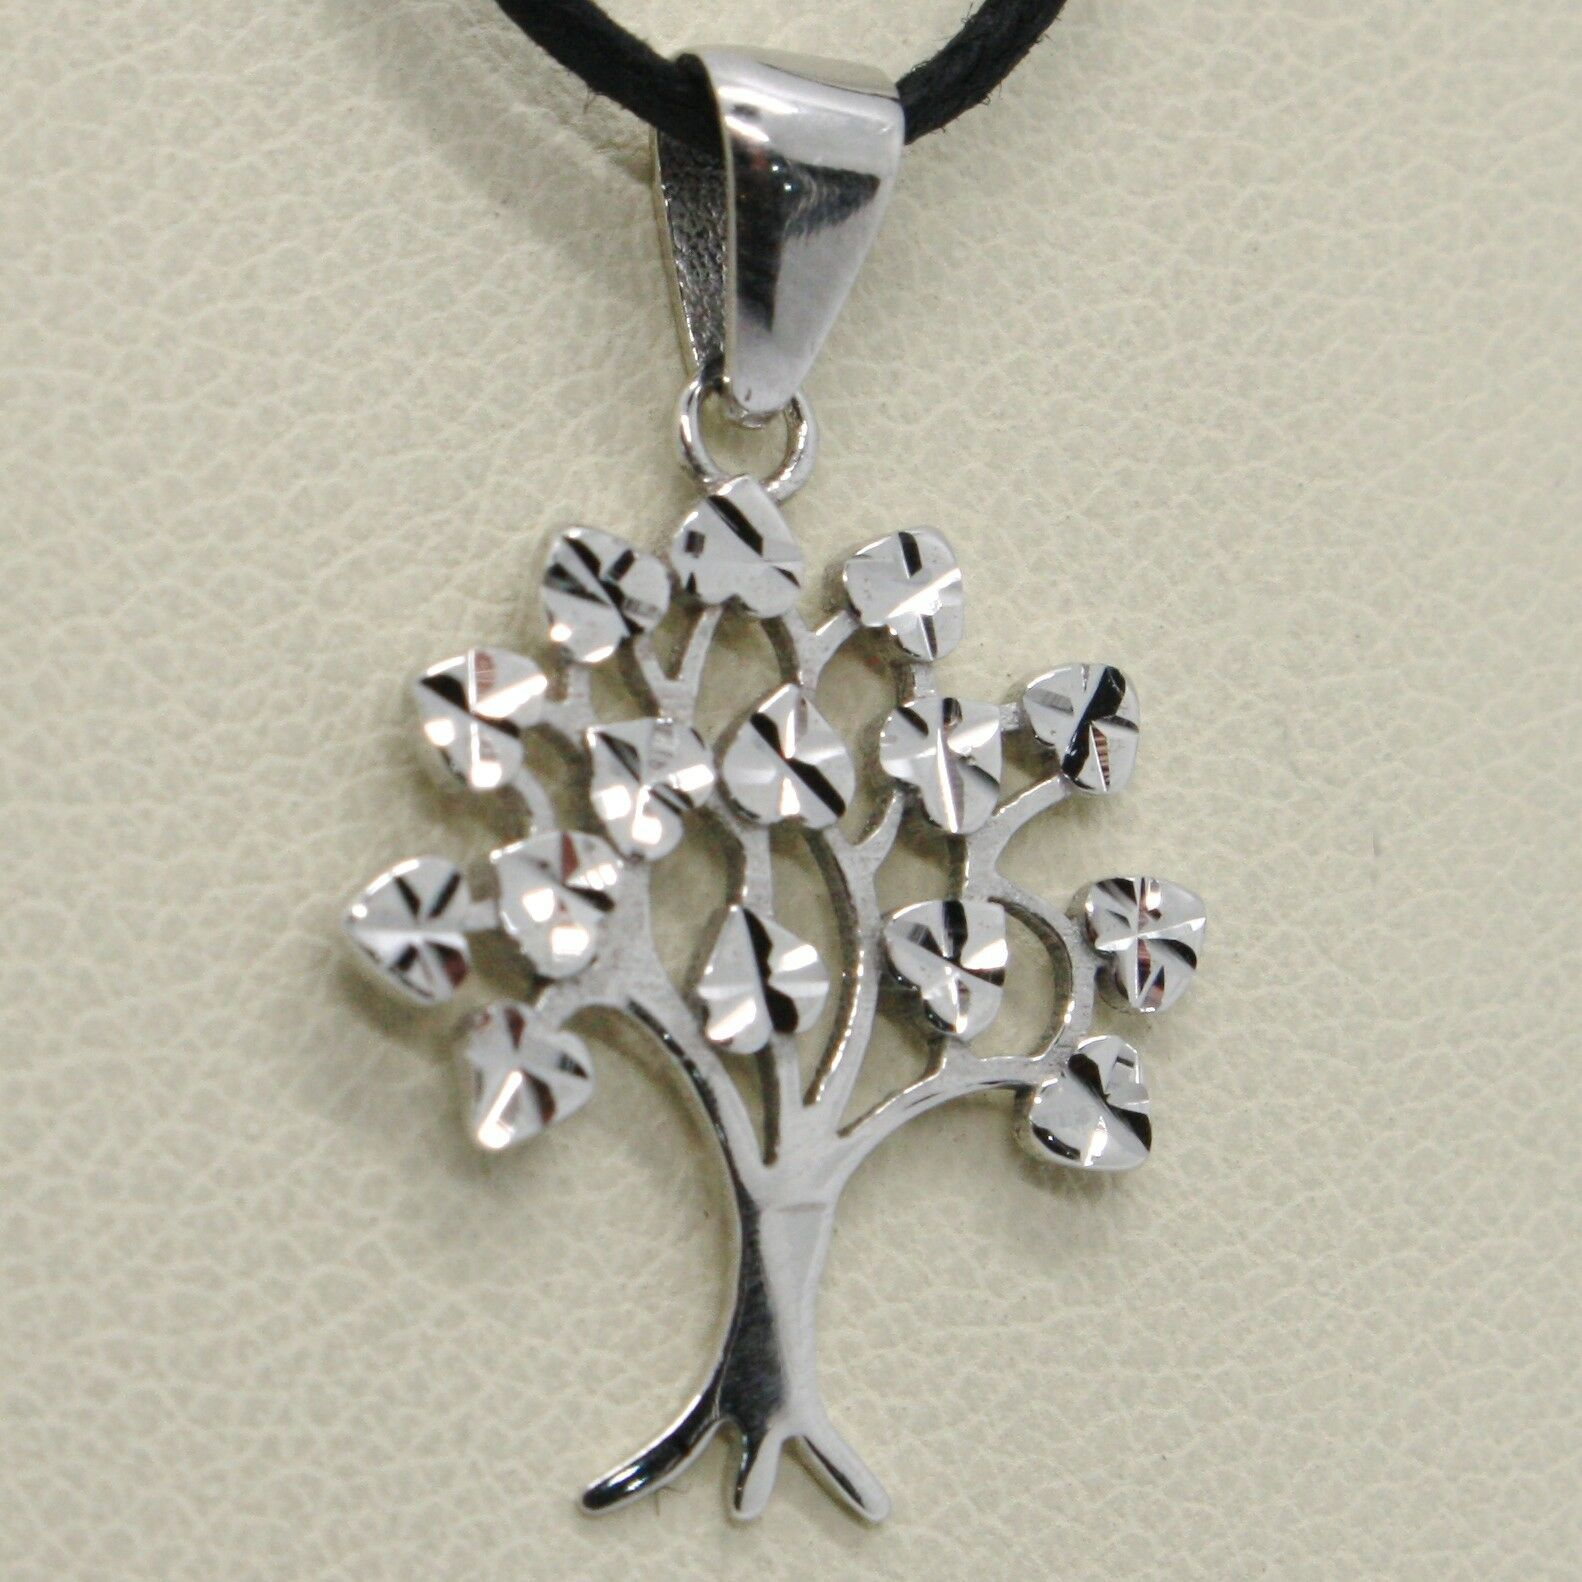 SOLID 18K WHITE GOLD 20 MM TREE OF LIFE WORKED PENDANT, LEAF HEART MADE IN ITALY